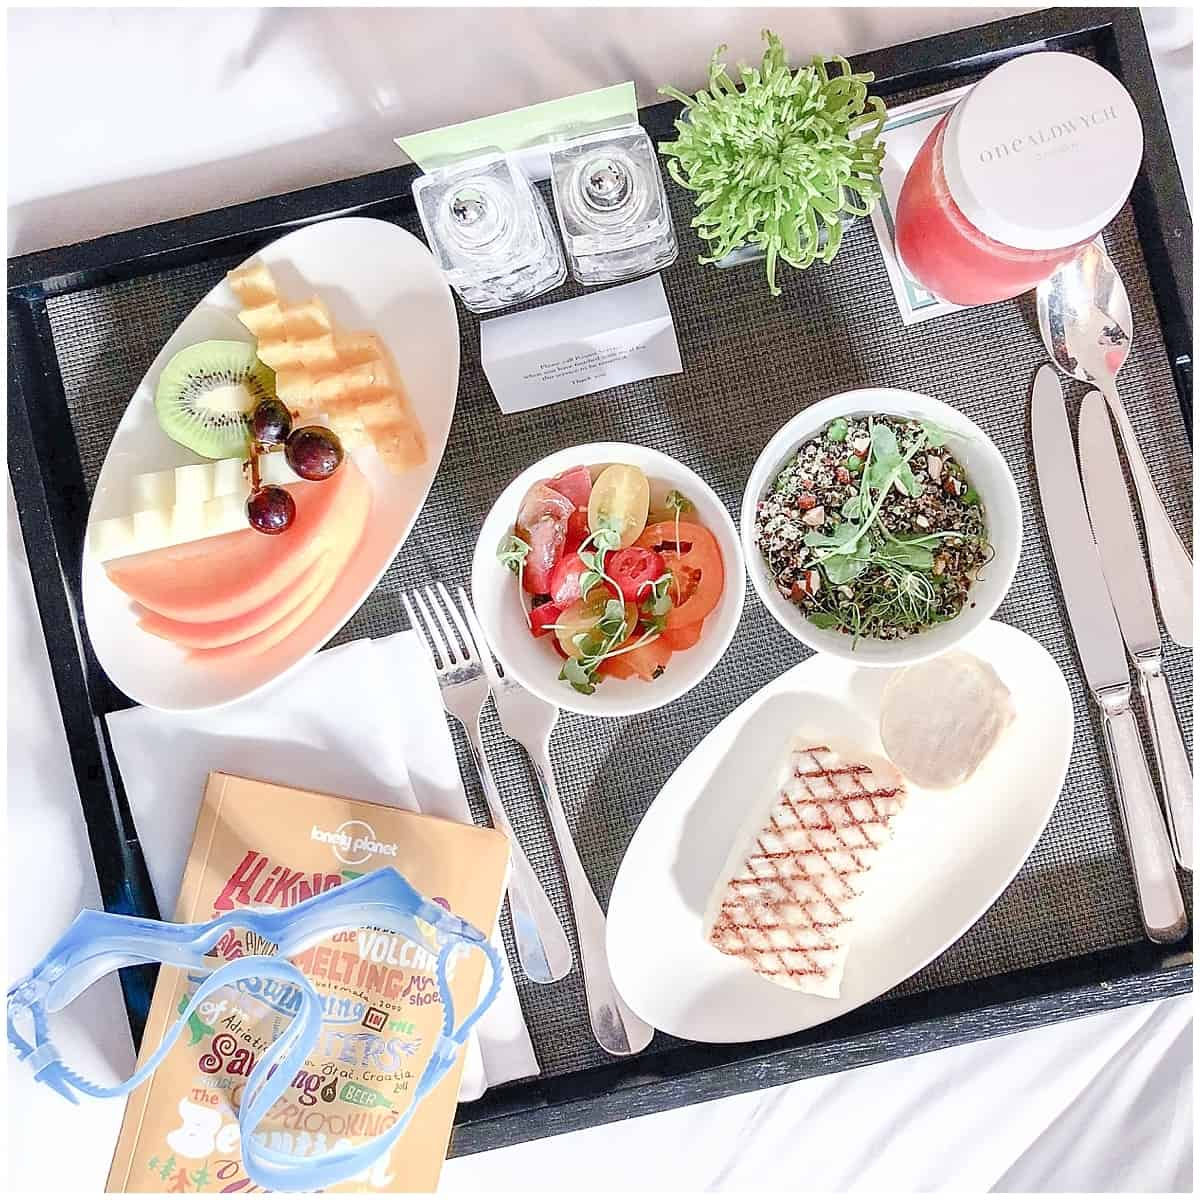 Healthy Tray of Treats at the One Aldwych Luxury Hotel in London Near Covent Garden